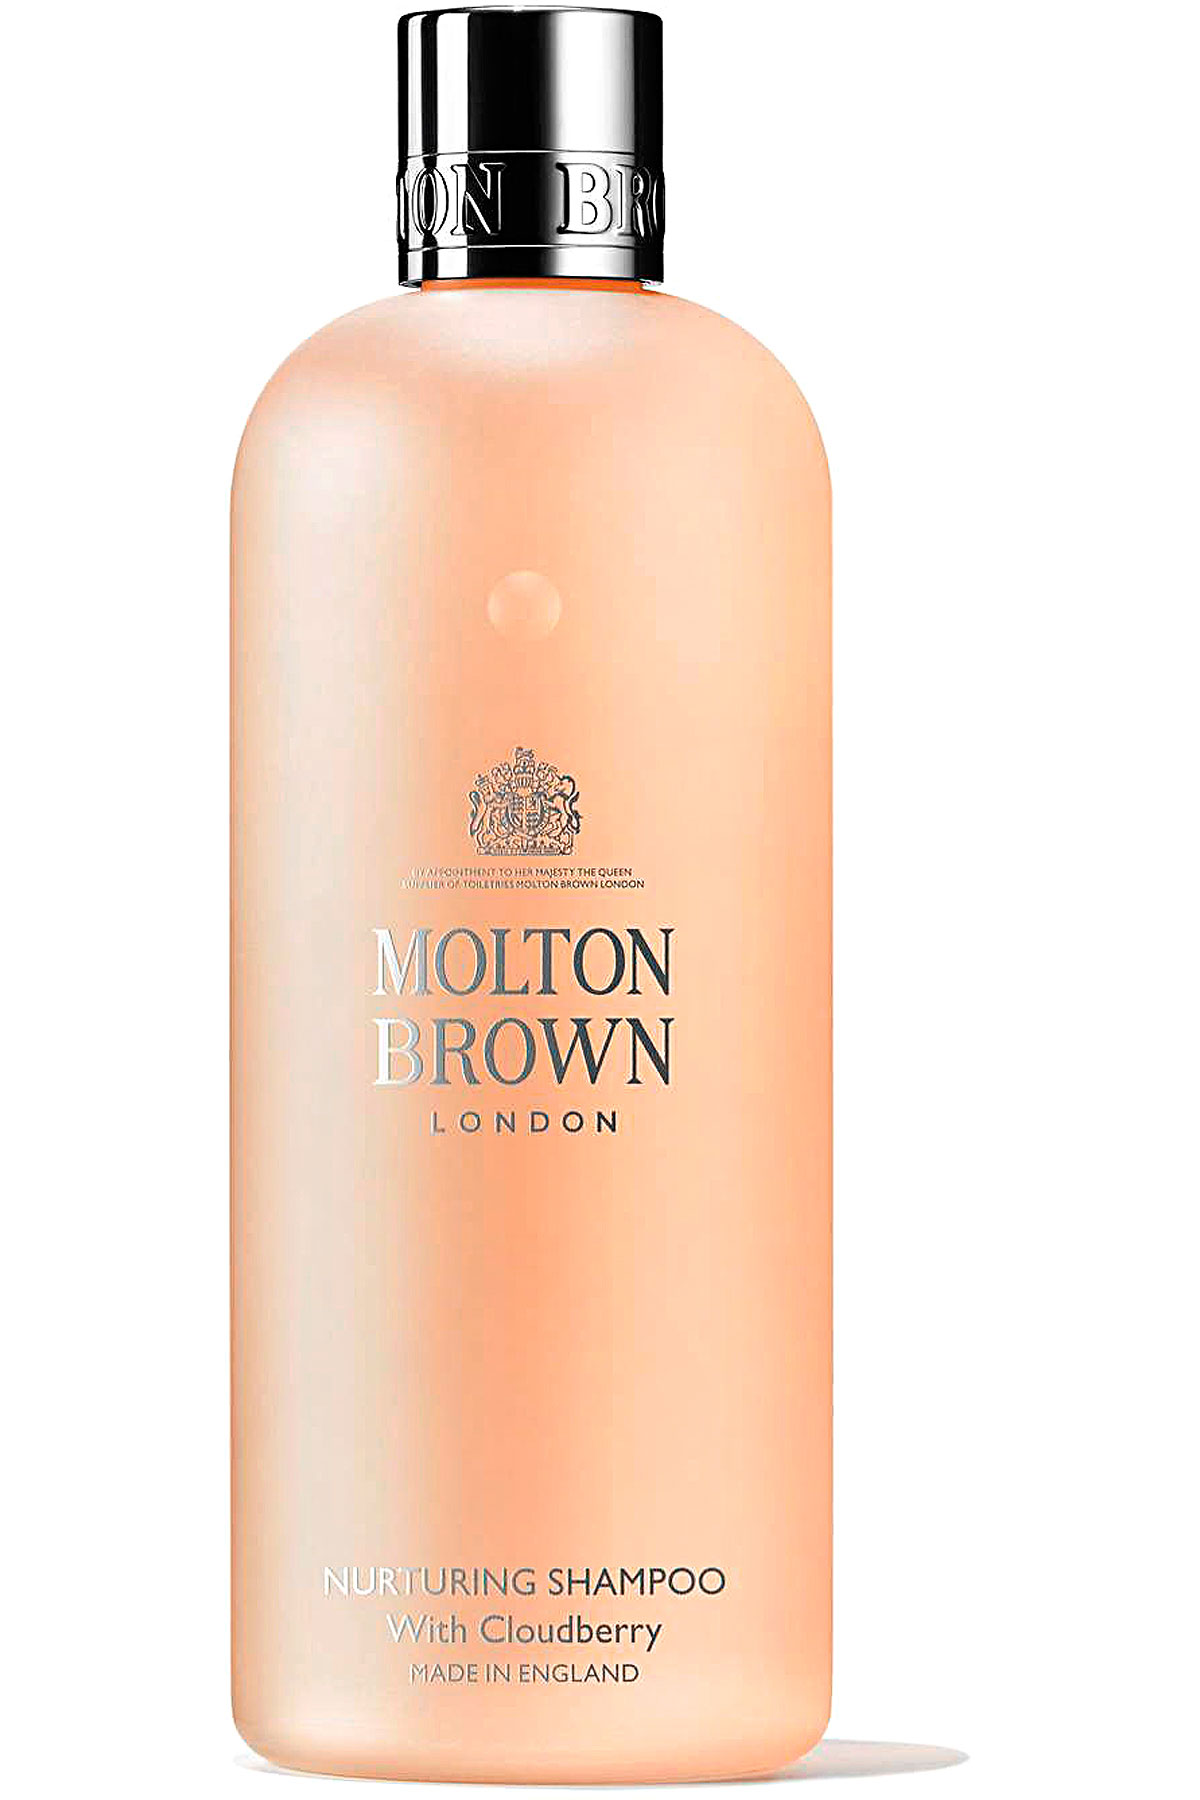 Molton Brown Beauty for Women, Cloudberry - Nurturing Shampoo - 300 Ml, 2019, 300 ml